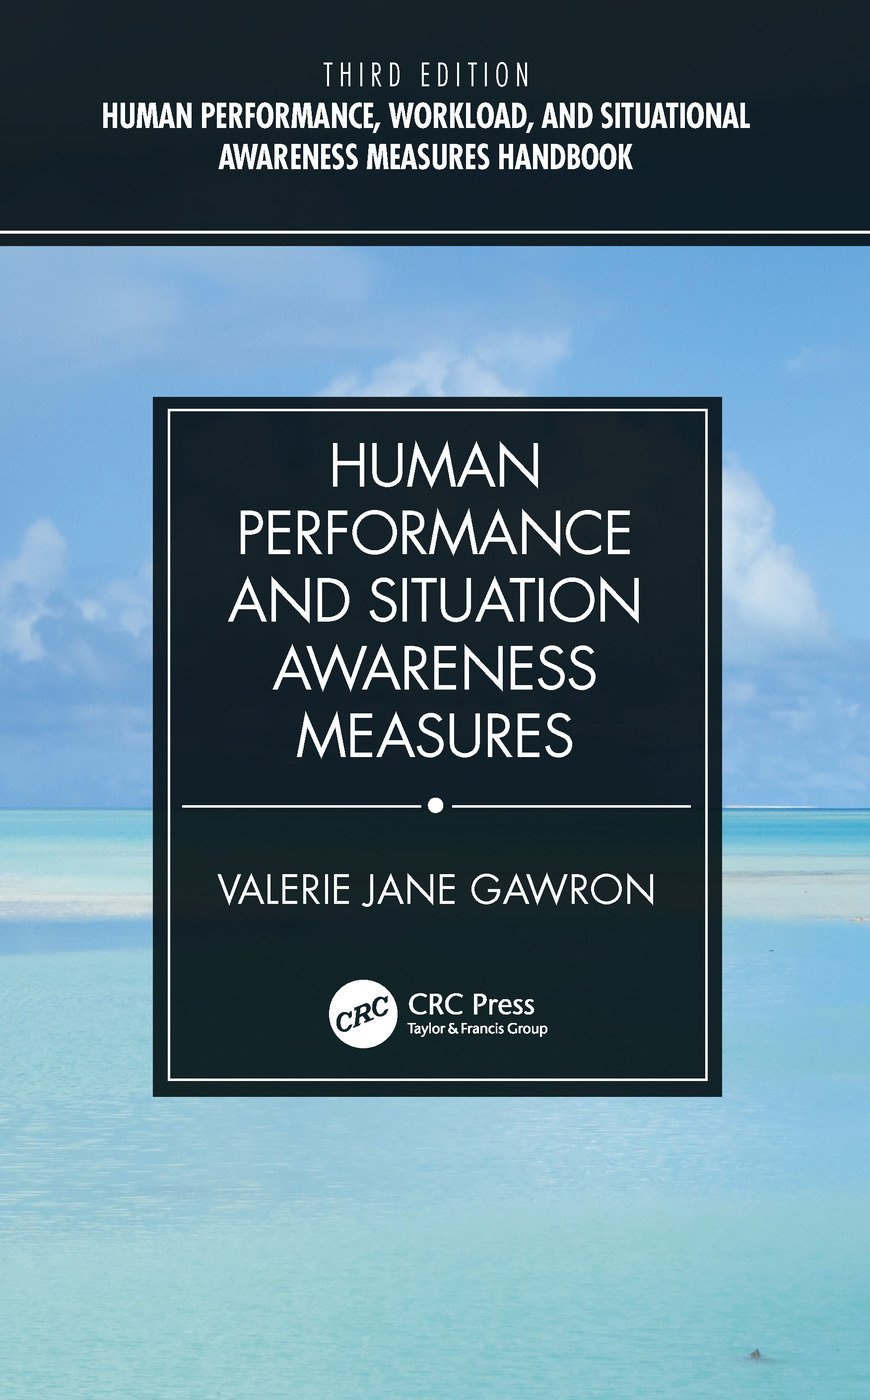 Human Performance and Situation Awareness Measures book cover